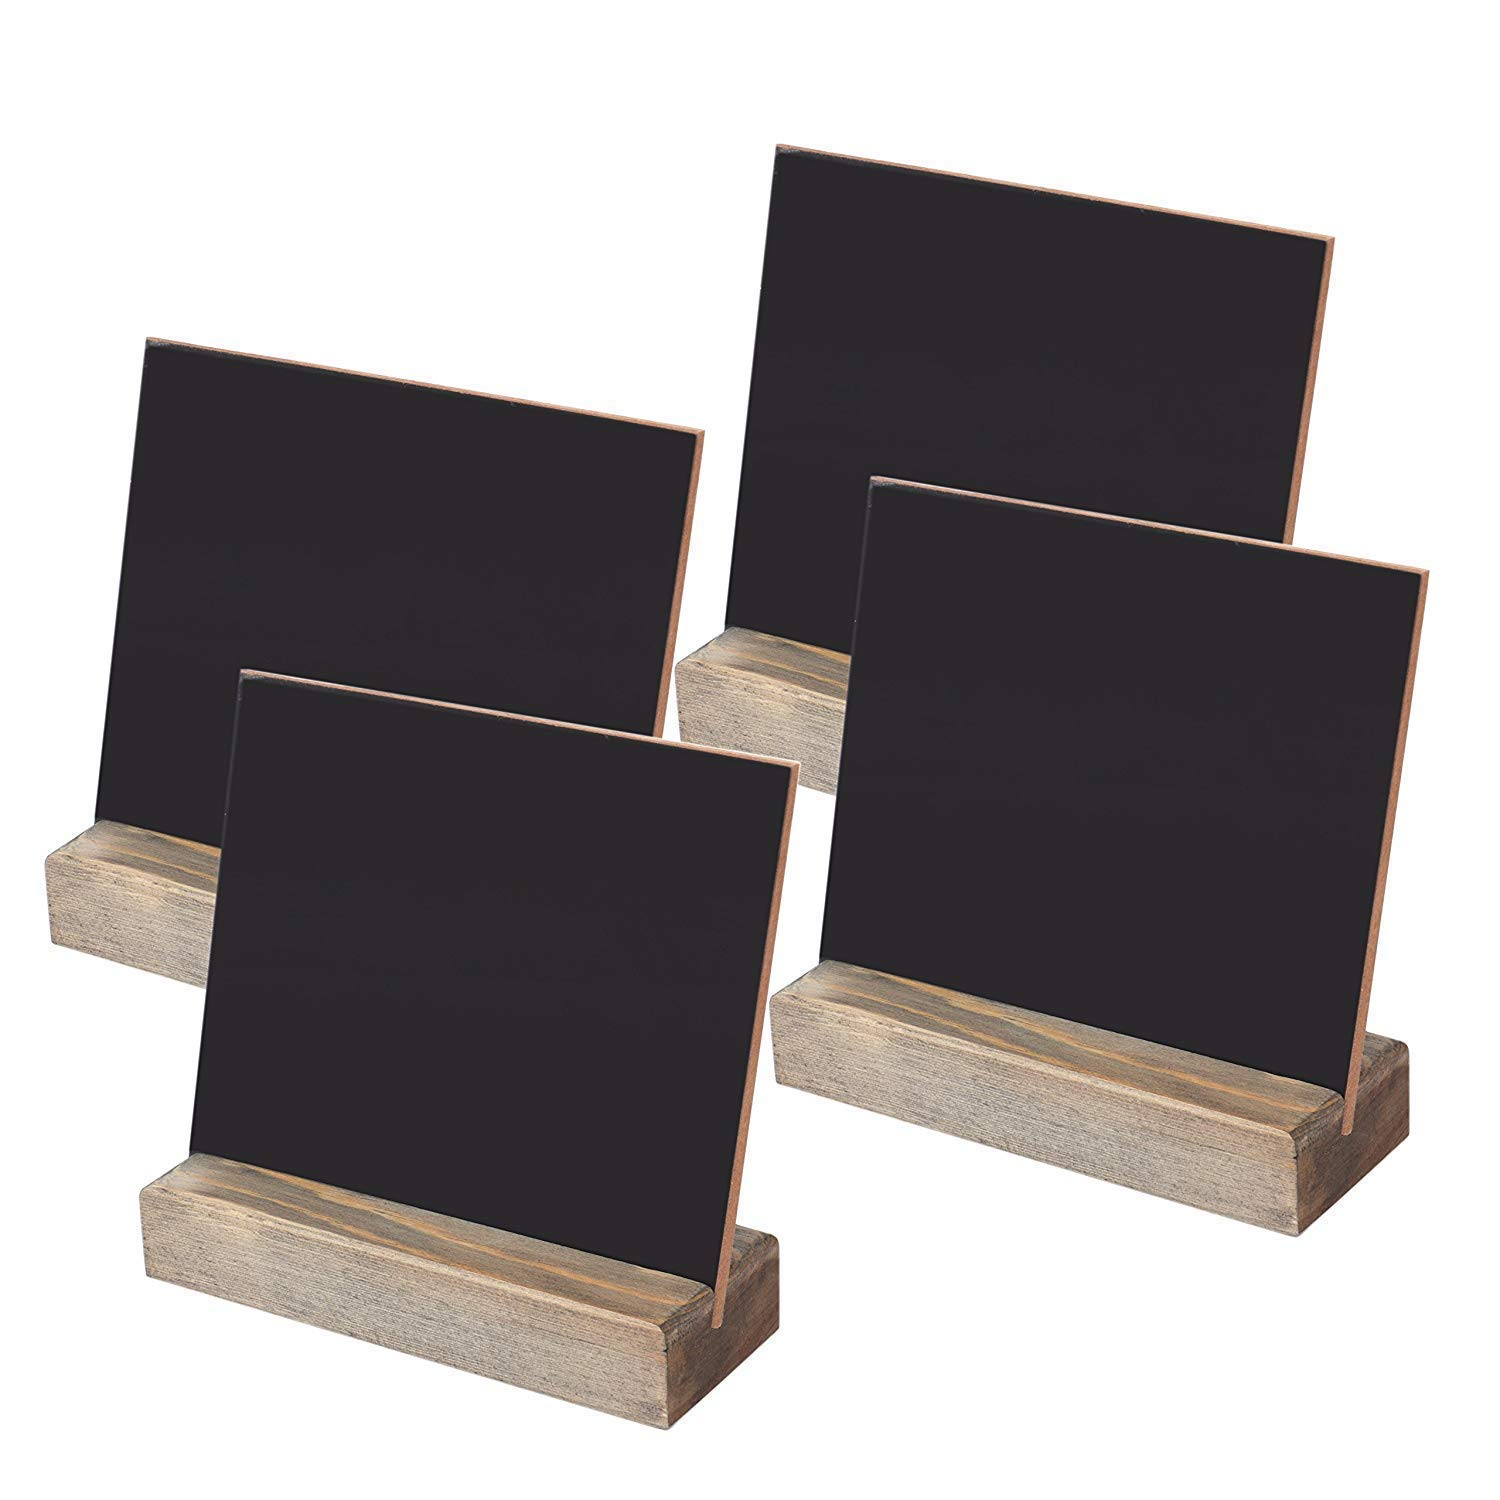 Fasmov Tabletop Chalkboard Signs with Wood Base Stands 5 X 6- Pack of 4